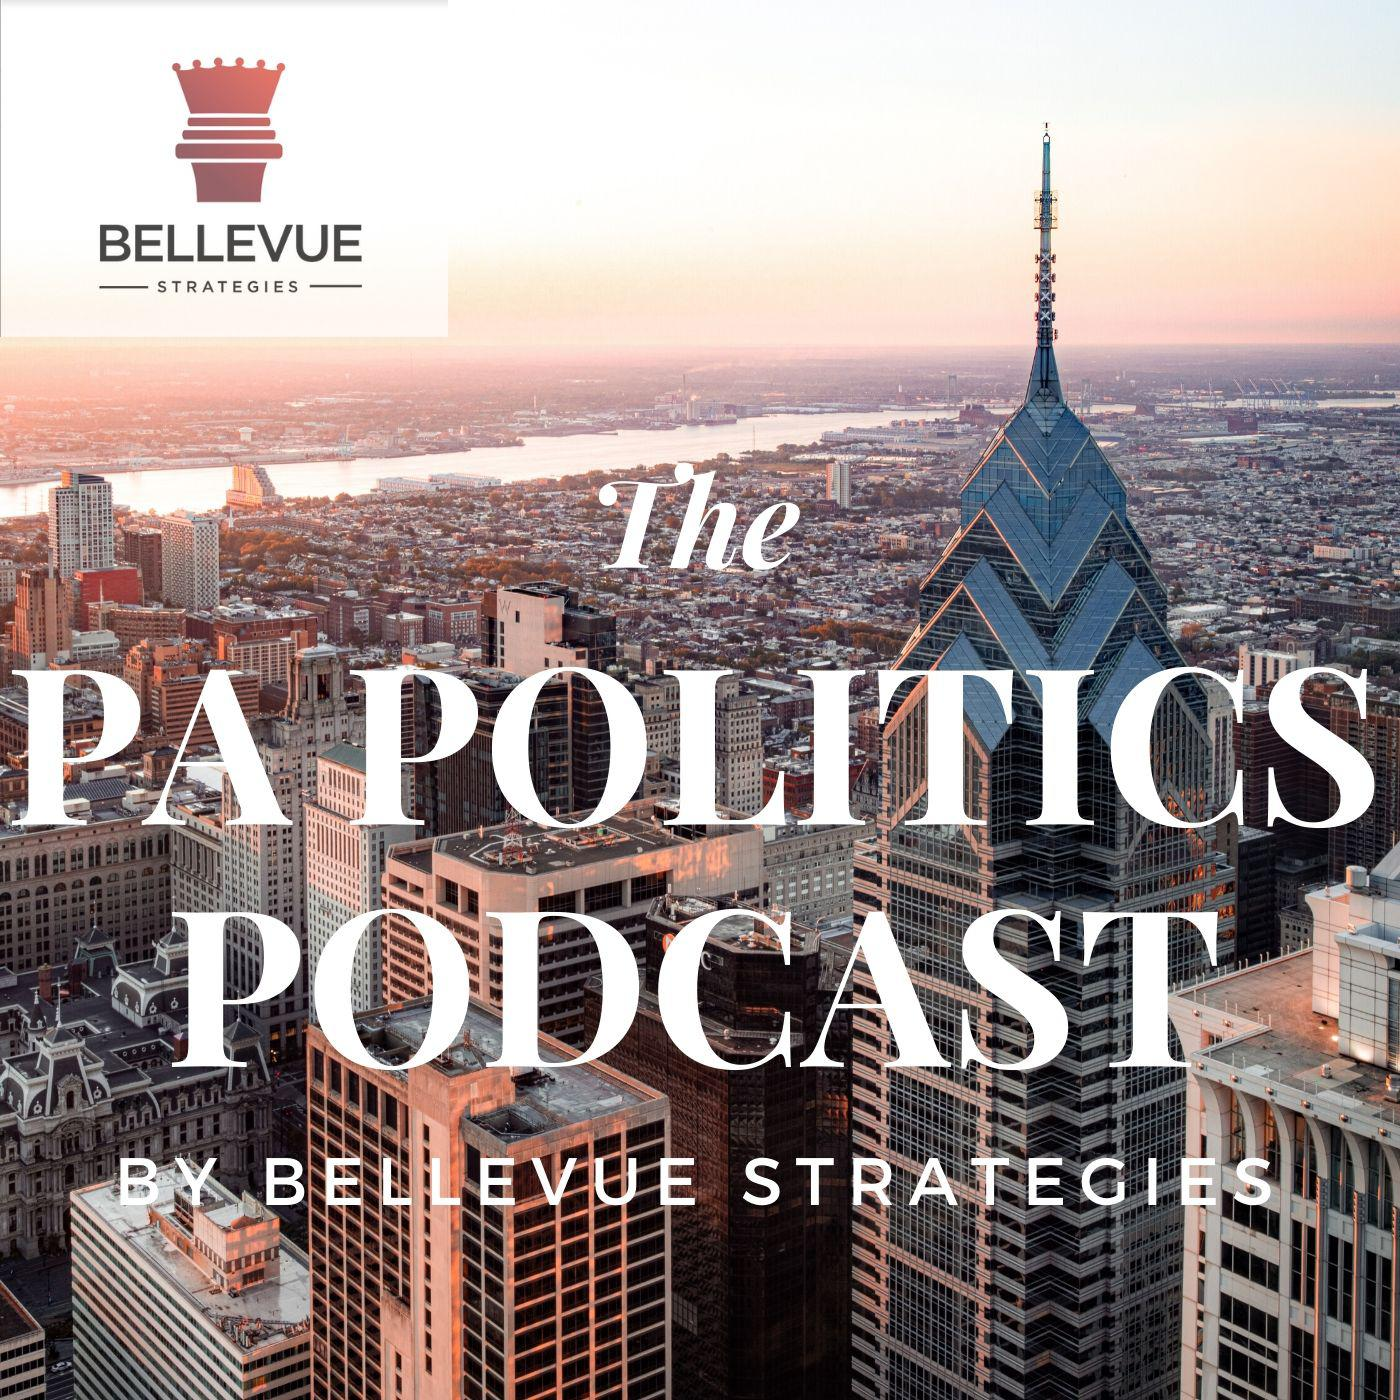 The PA Politics Podcast: Episode 14 - The Share Food Program on their COVID-19 Response